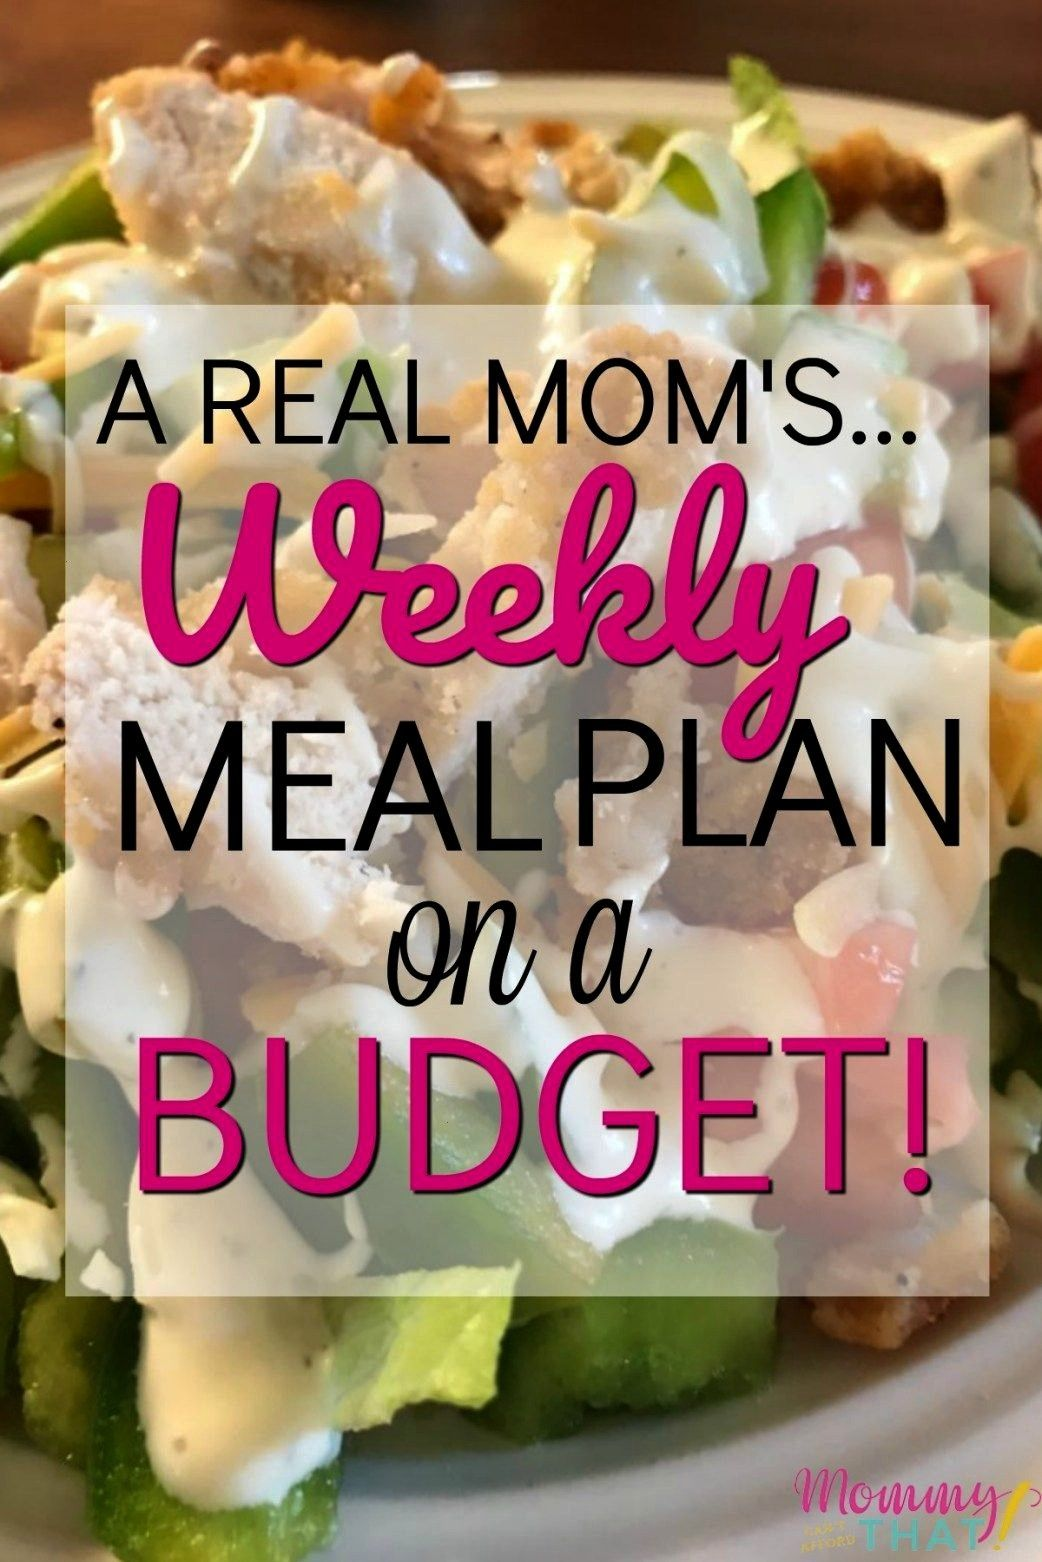 Weekly Meal Plan For Family Of 5  Mommy Cant Afford That  100 Weekly Meal Plan For Family Of 5  Mommy Cant Afford That   If you love traditional American potato salad you...